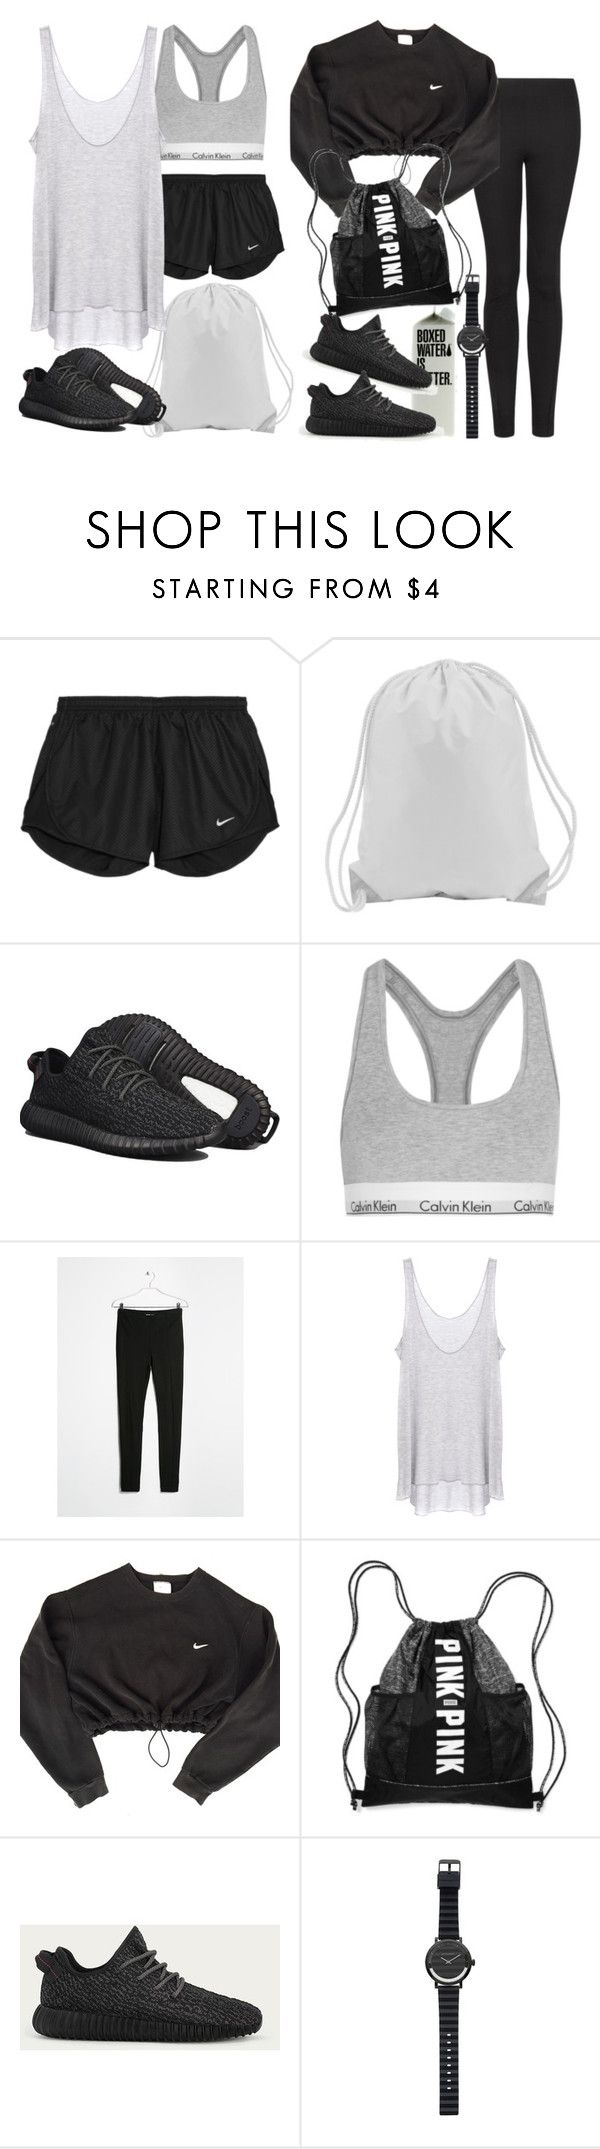 """Untitled #8527"" by nikka-phillips ❤ liked on Polyvore featuring NIKE, adidas, Calvin Klein Underwear, MANGO, Enza Costa, Victoria's Secret and Witchery"